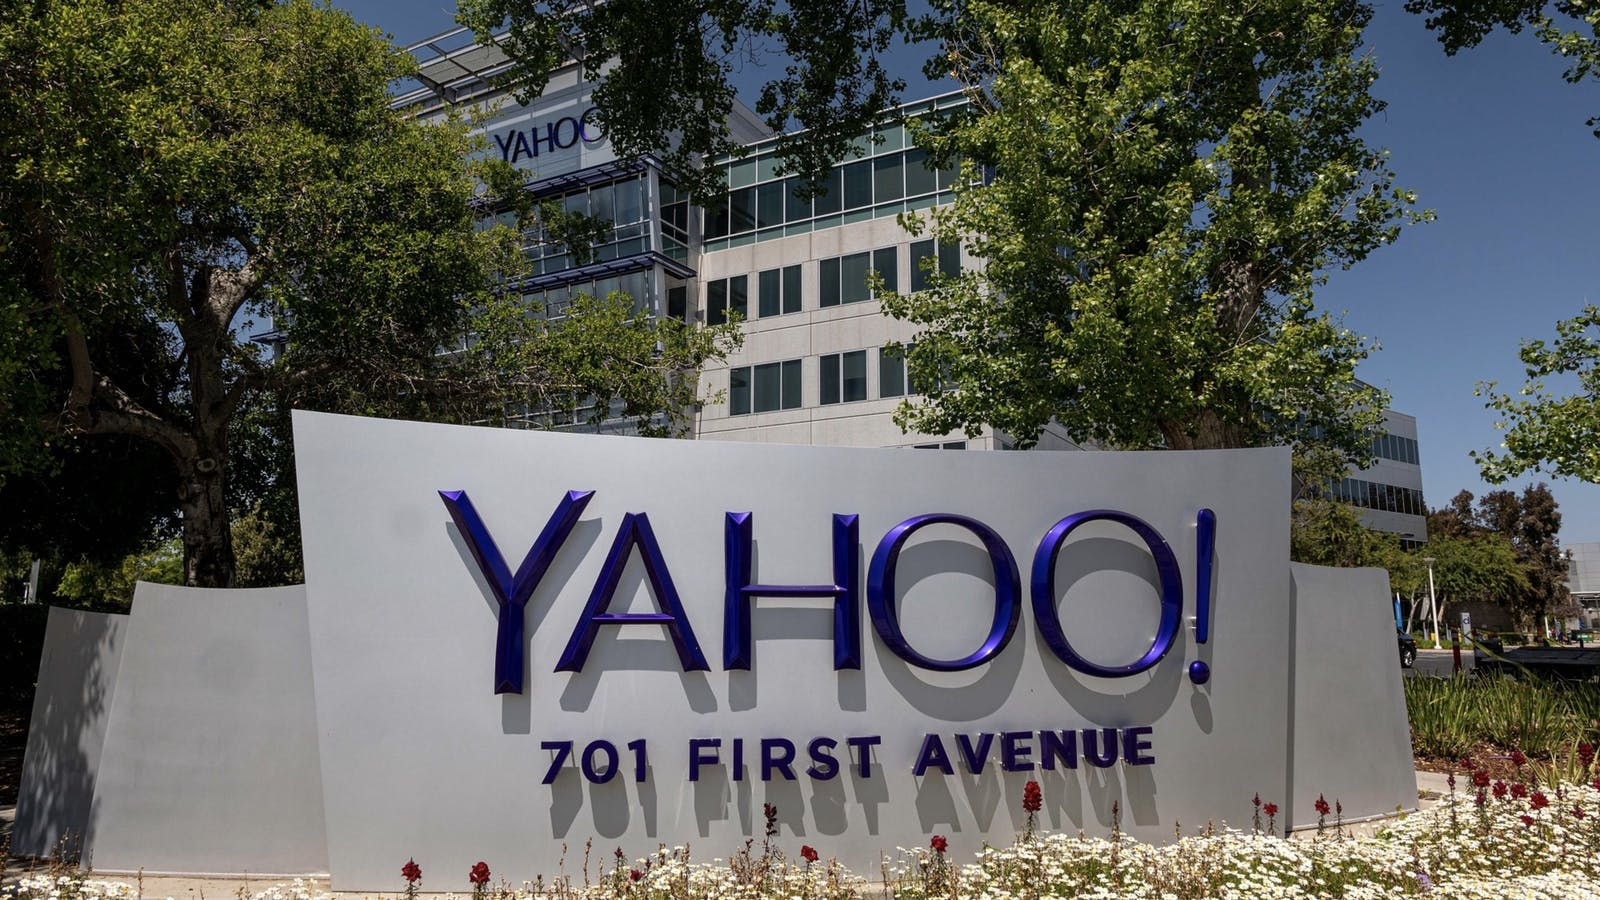 Yahoo's headquarters in 2018. Photo by Bloomberg